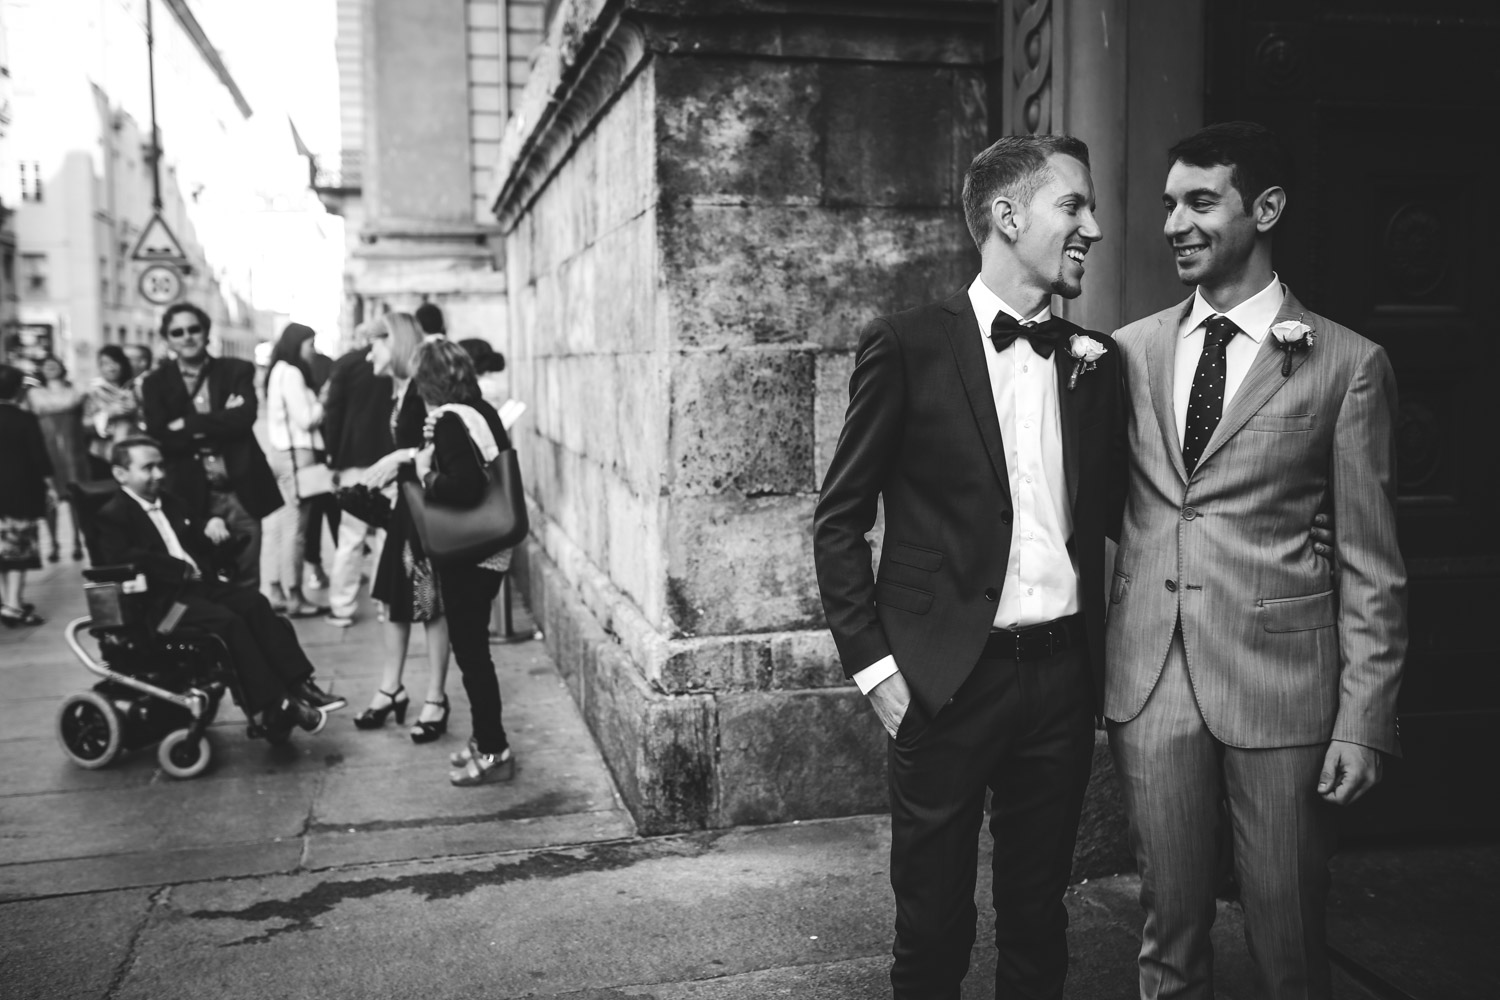 monica-sica_photography_trattoria-revelli_wedding-gay_torino_day_18